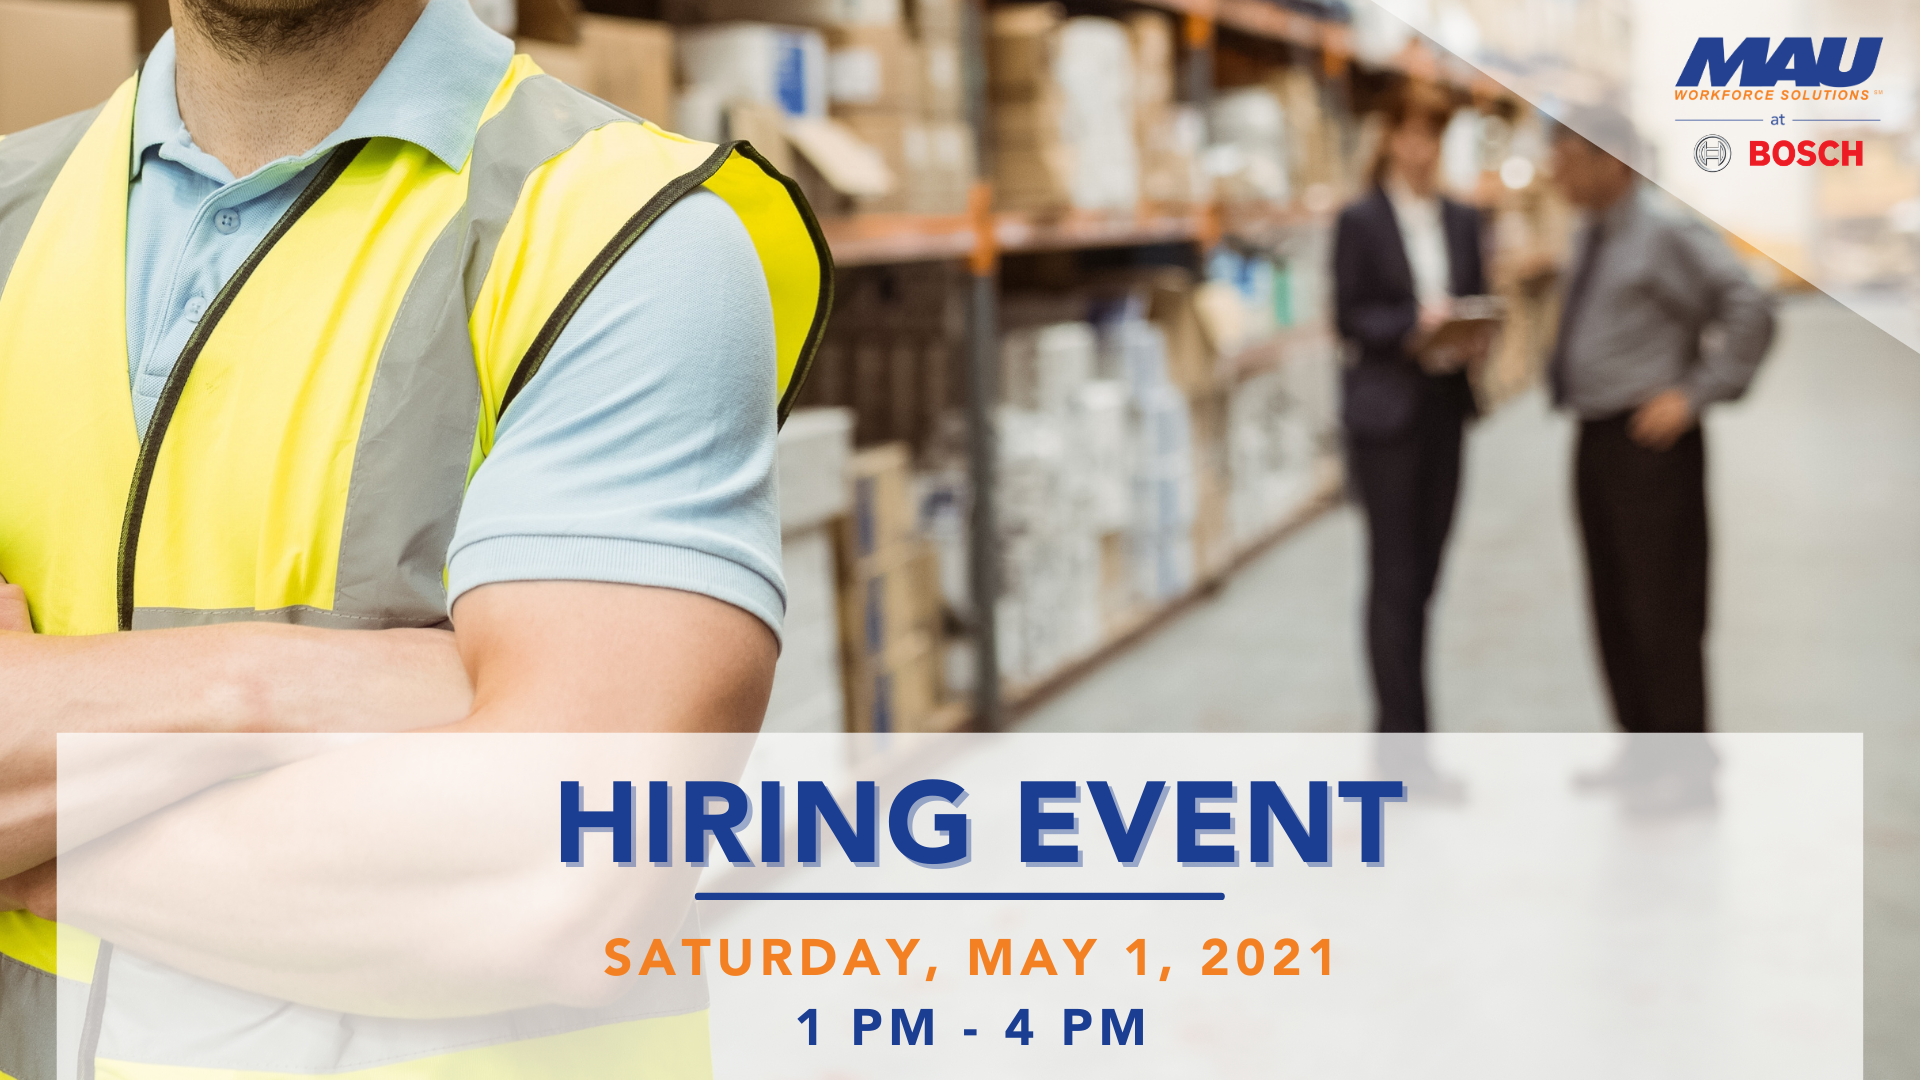 MAU at BOSCH Drive-thru Hiring Event Atlanta Warehouse positions